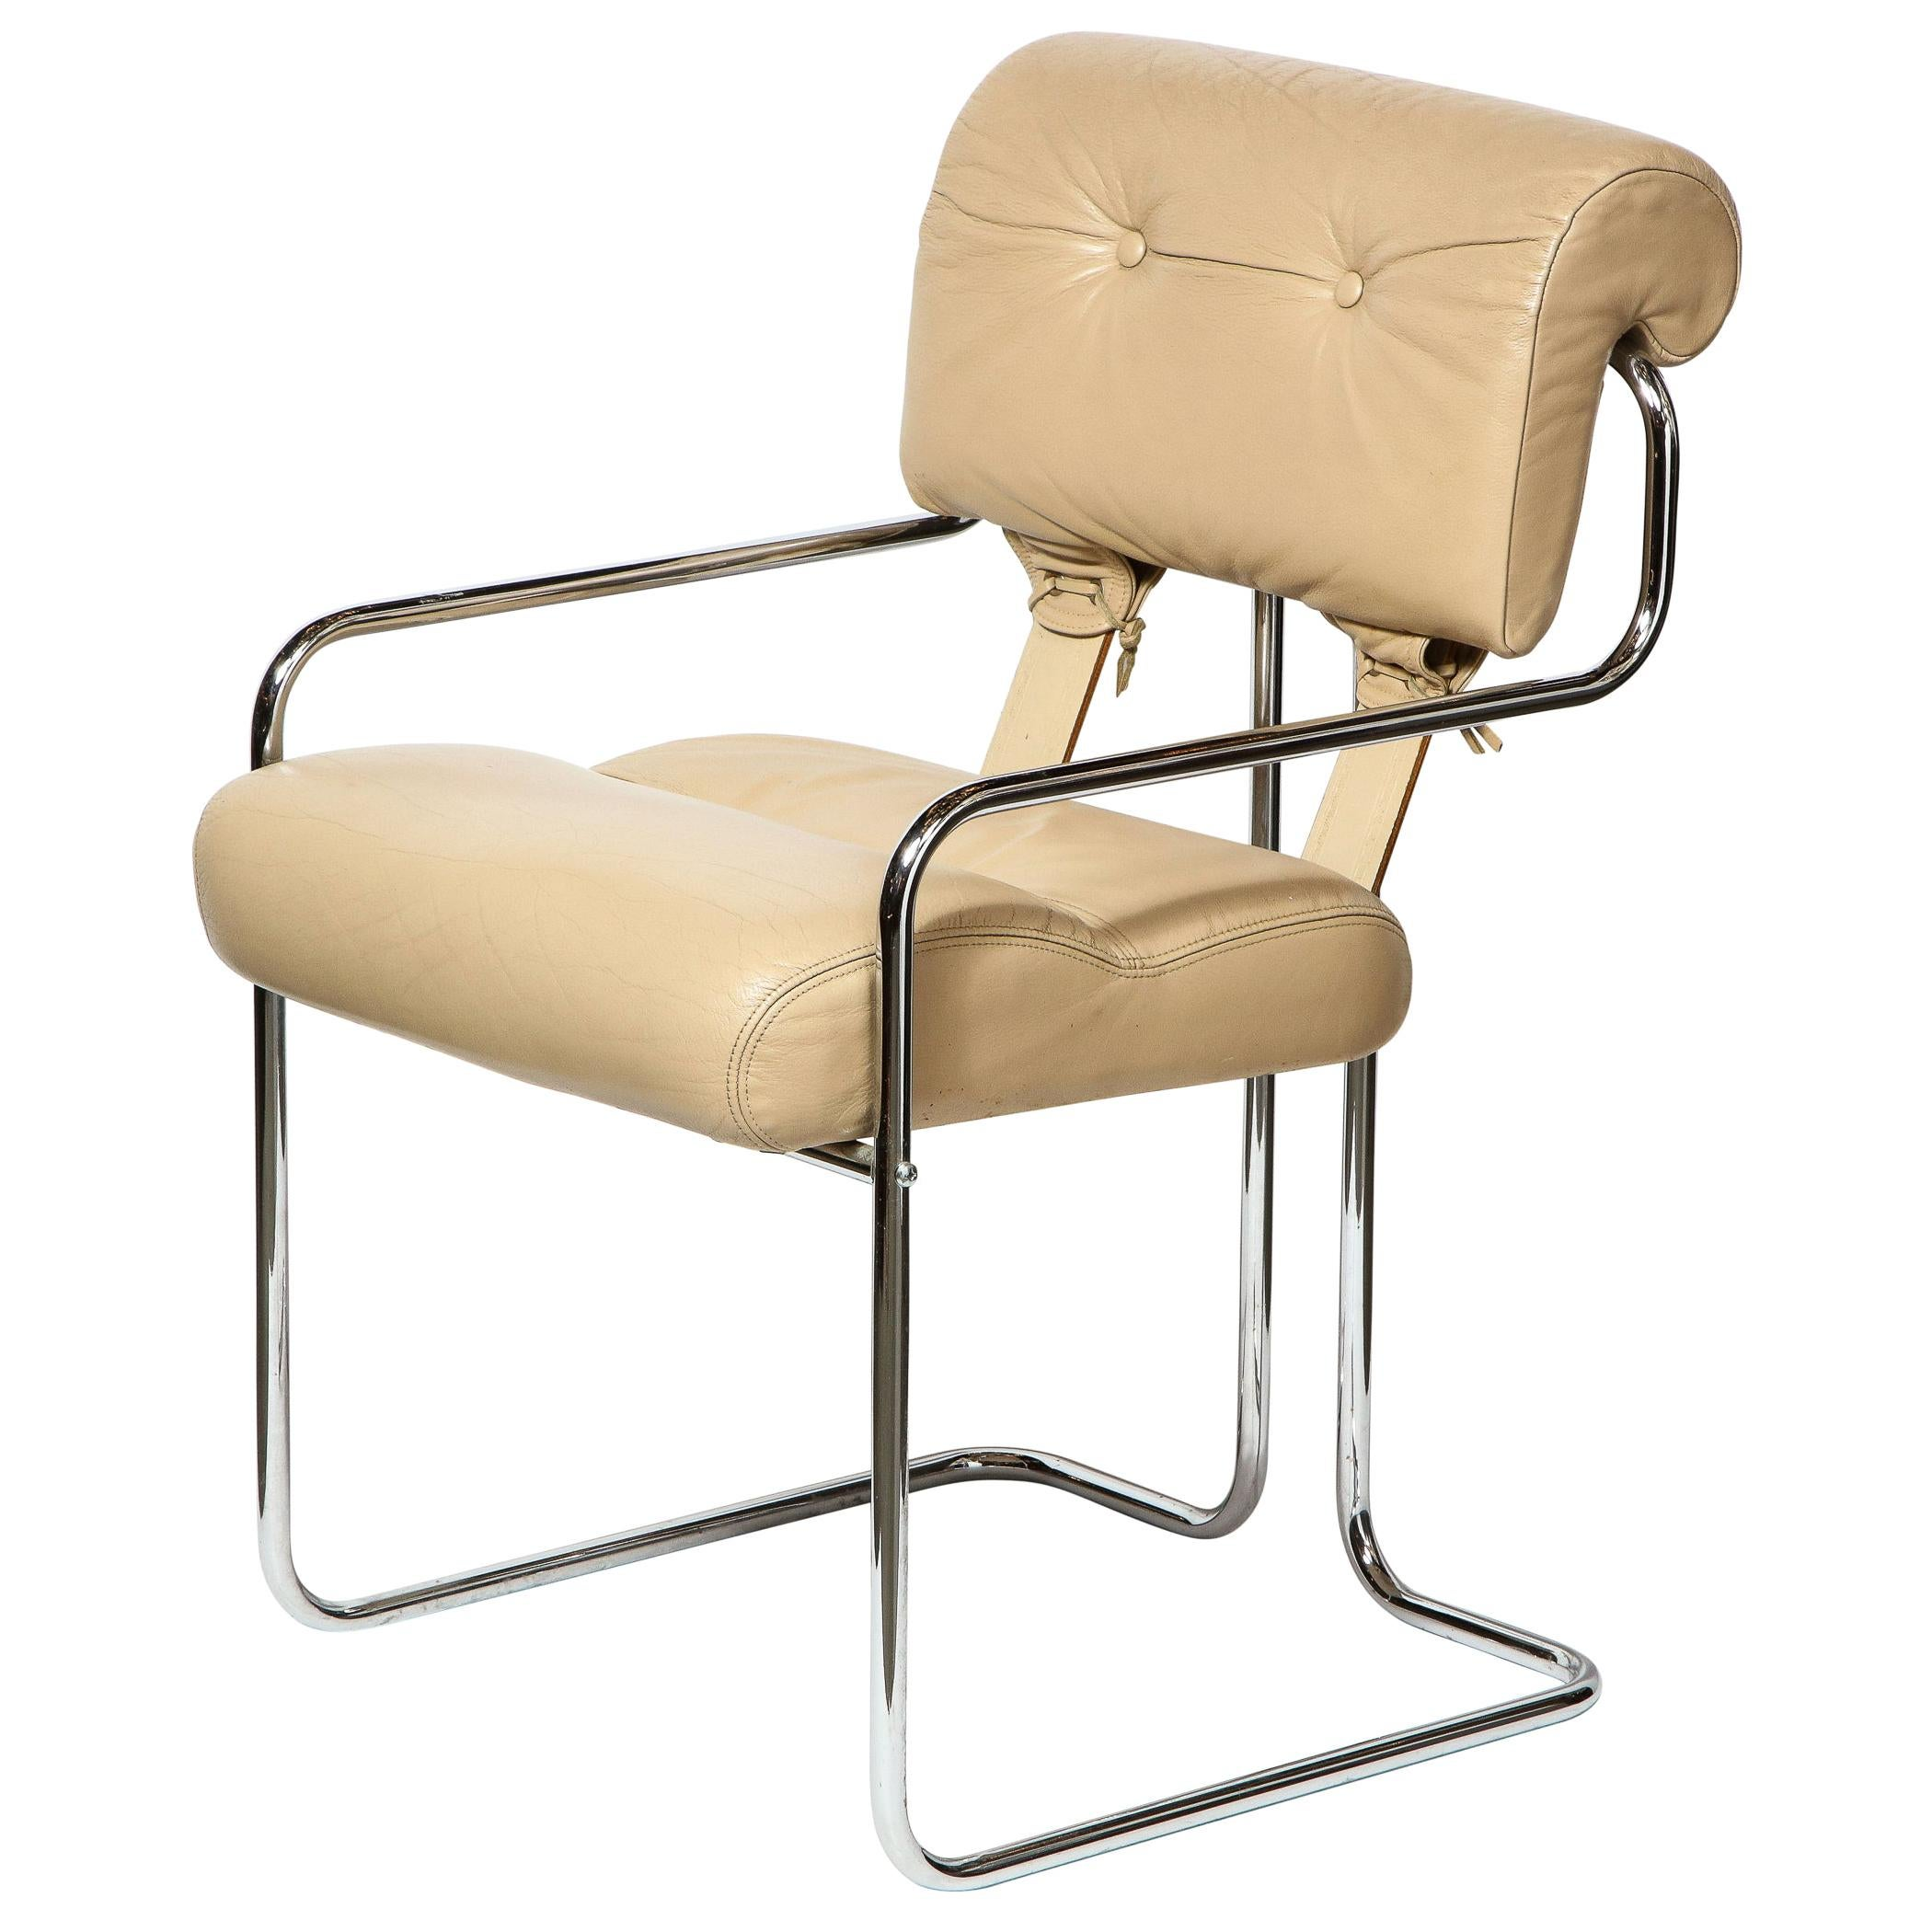 Mid-Century Modern Side Chair by Guido Faleschini for Pace Furniture Co.